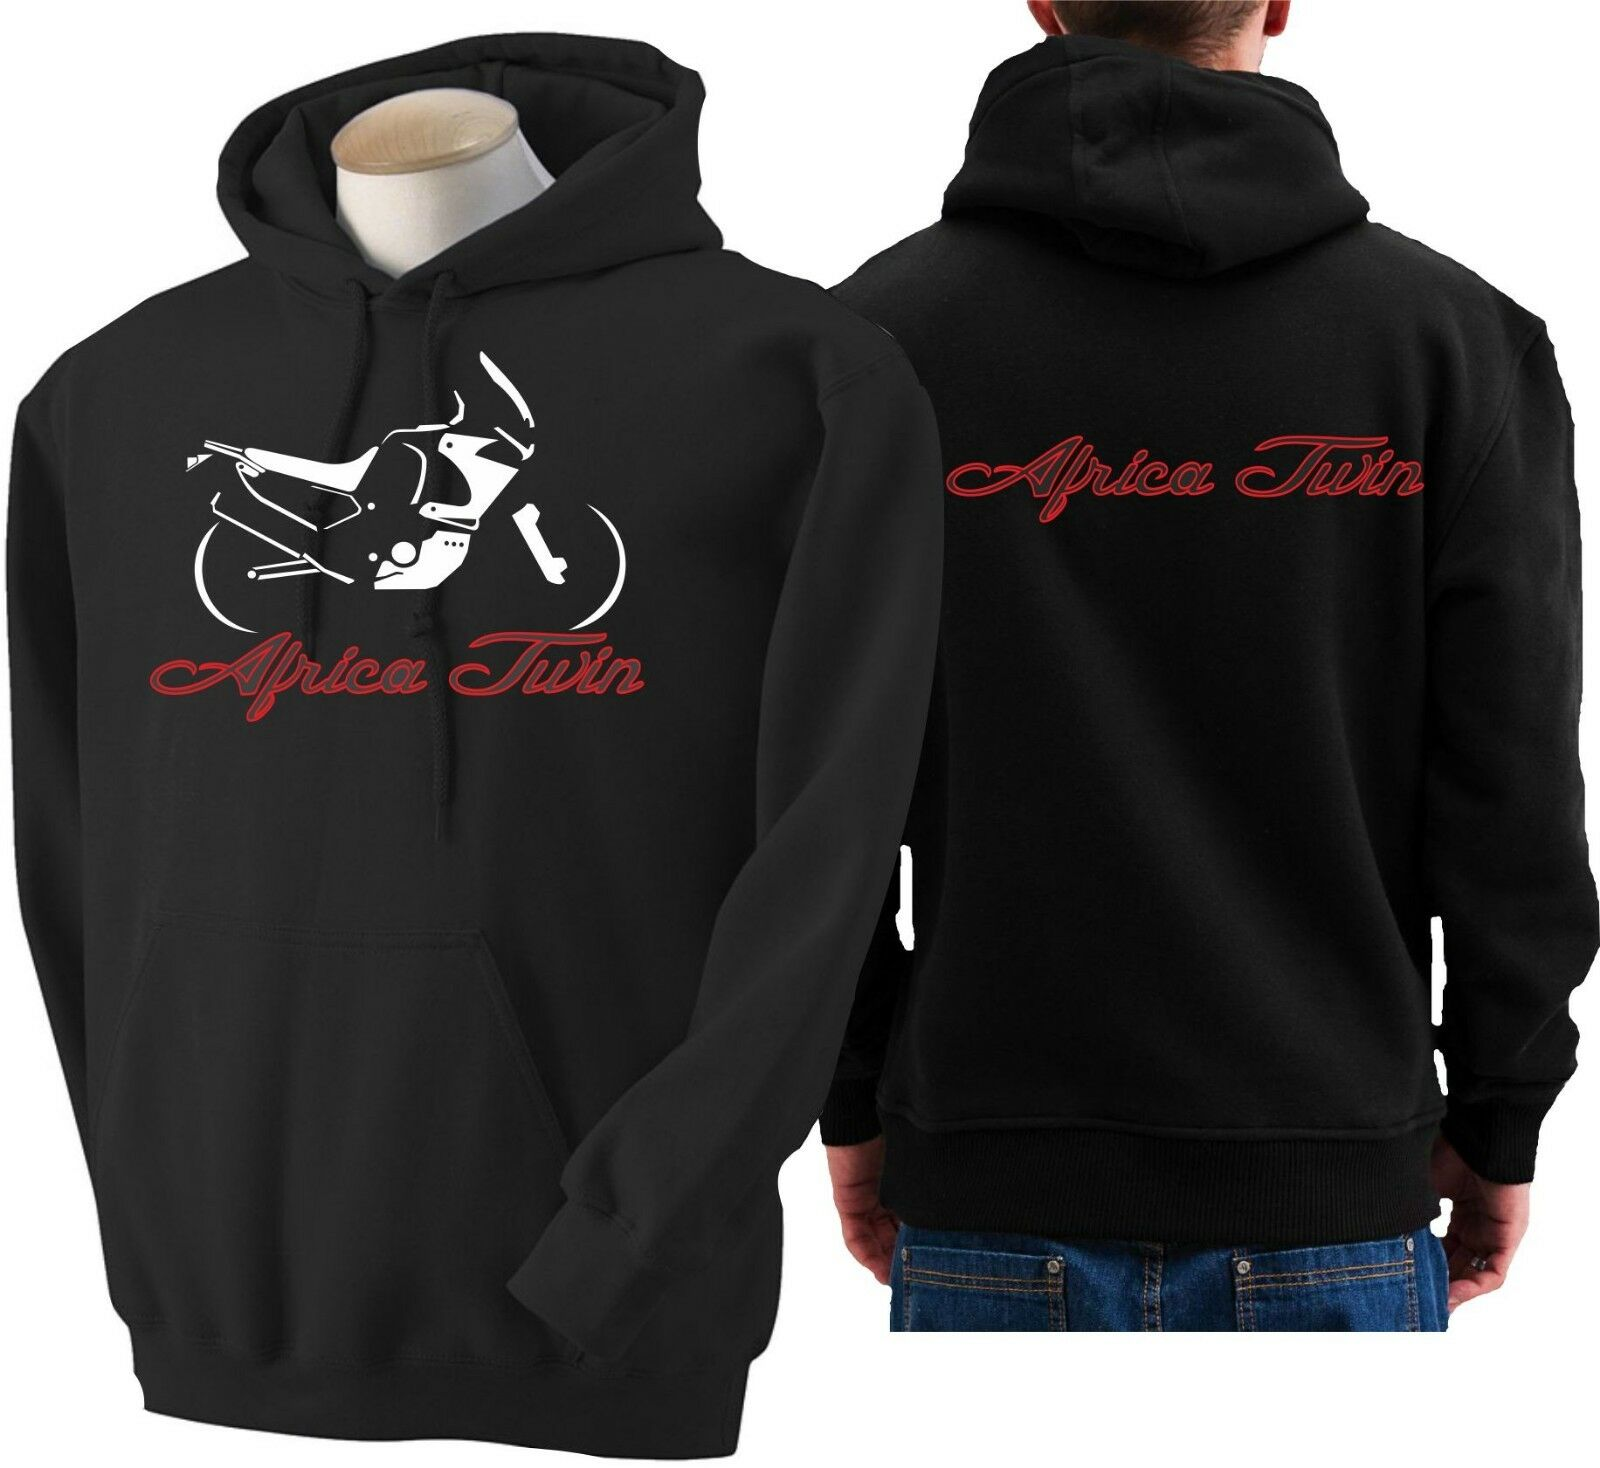 Hoodie for bike Honda Africa Twin sweatshirt hoody Sudadera moto sweater